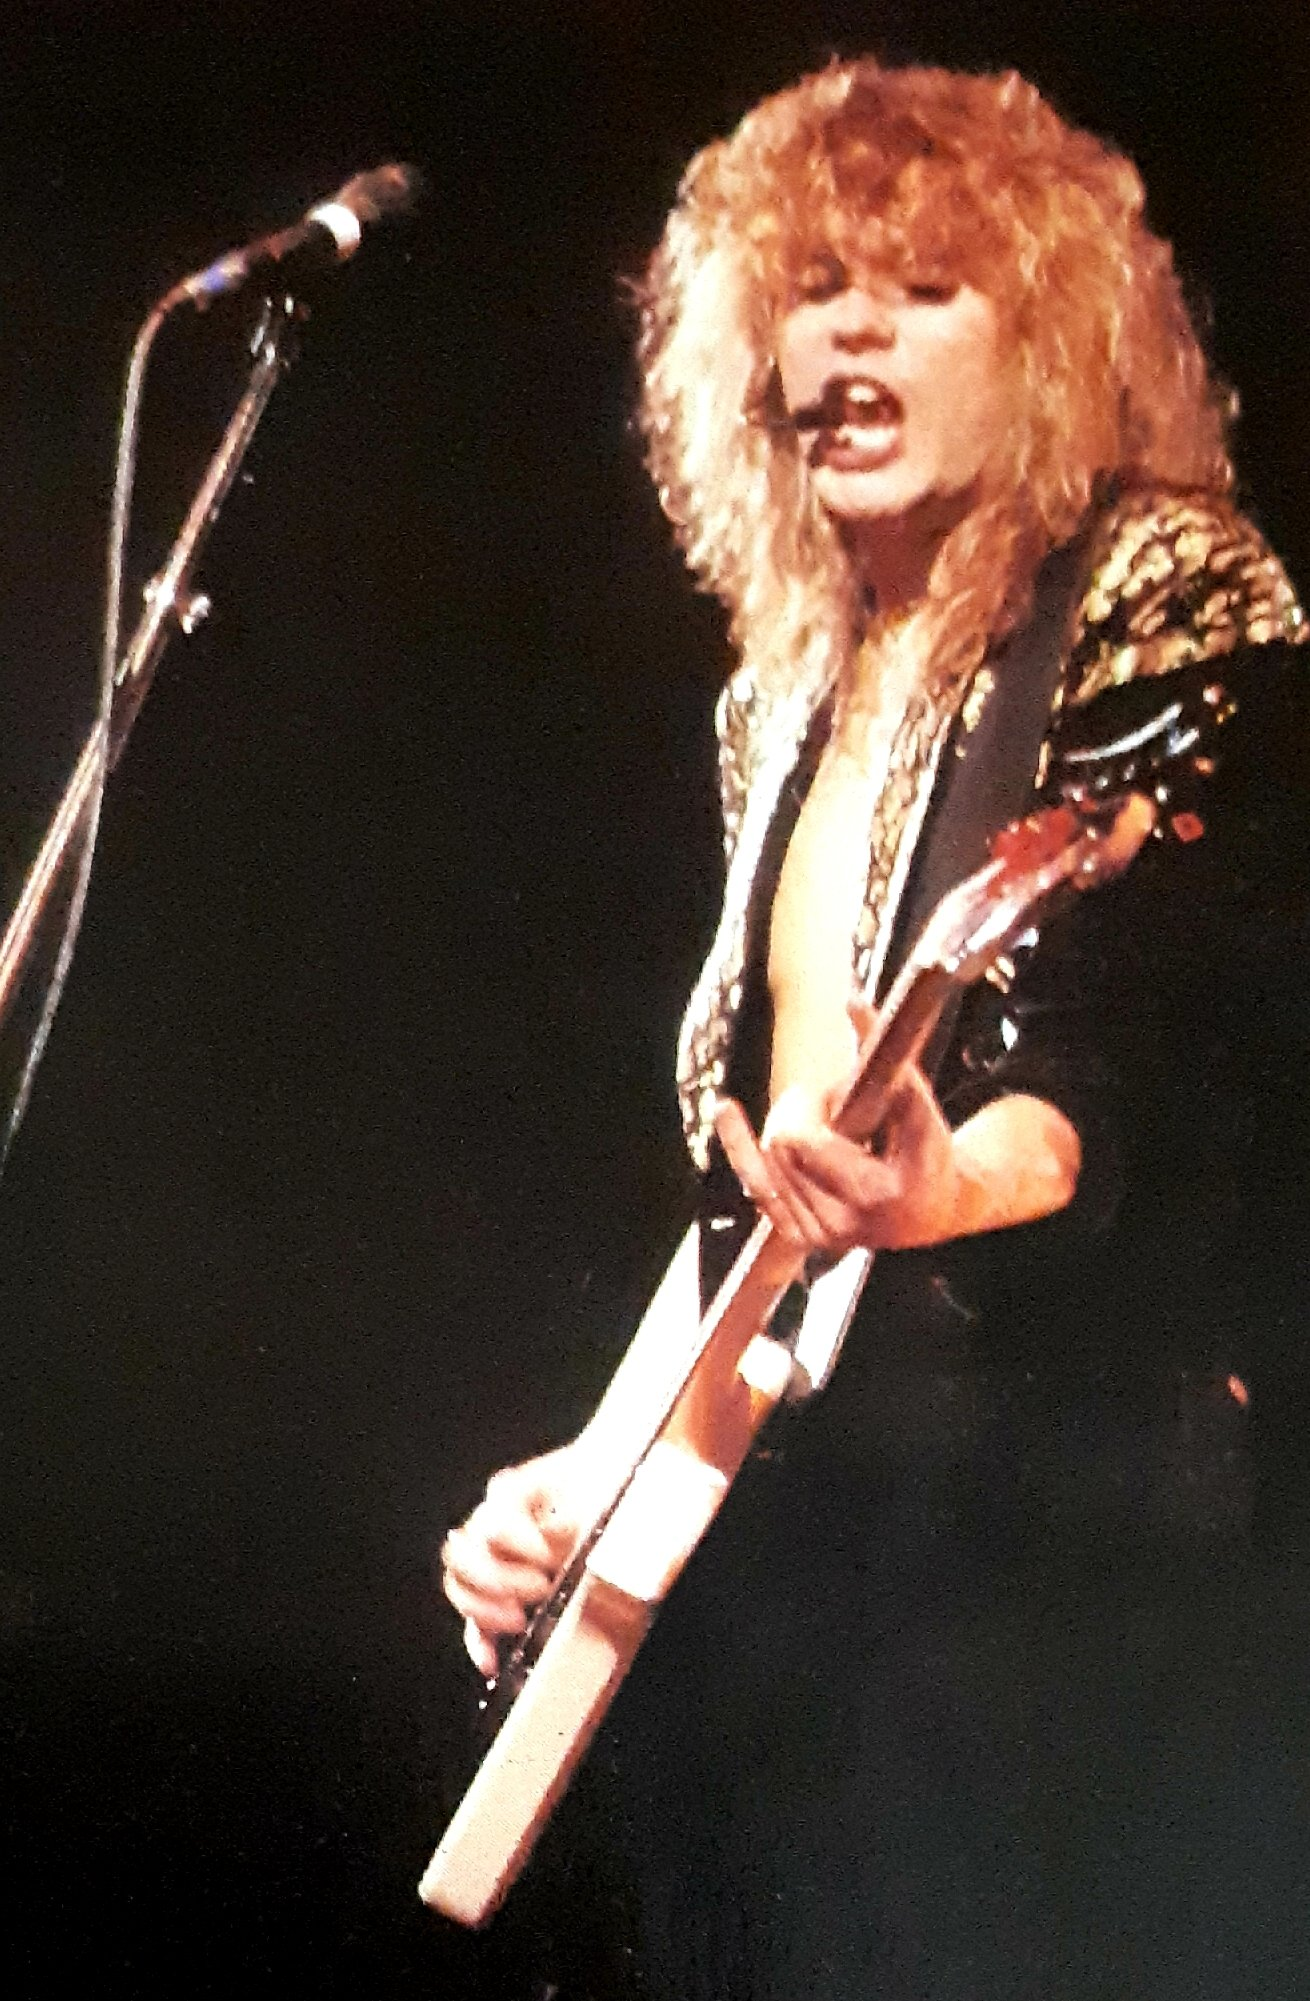 Happy Birthday to the great Def Leppard \s bass player Rick Savage